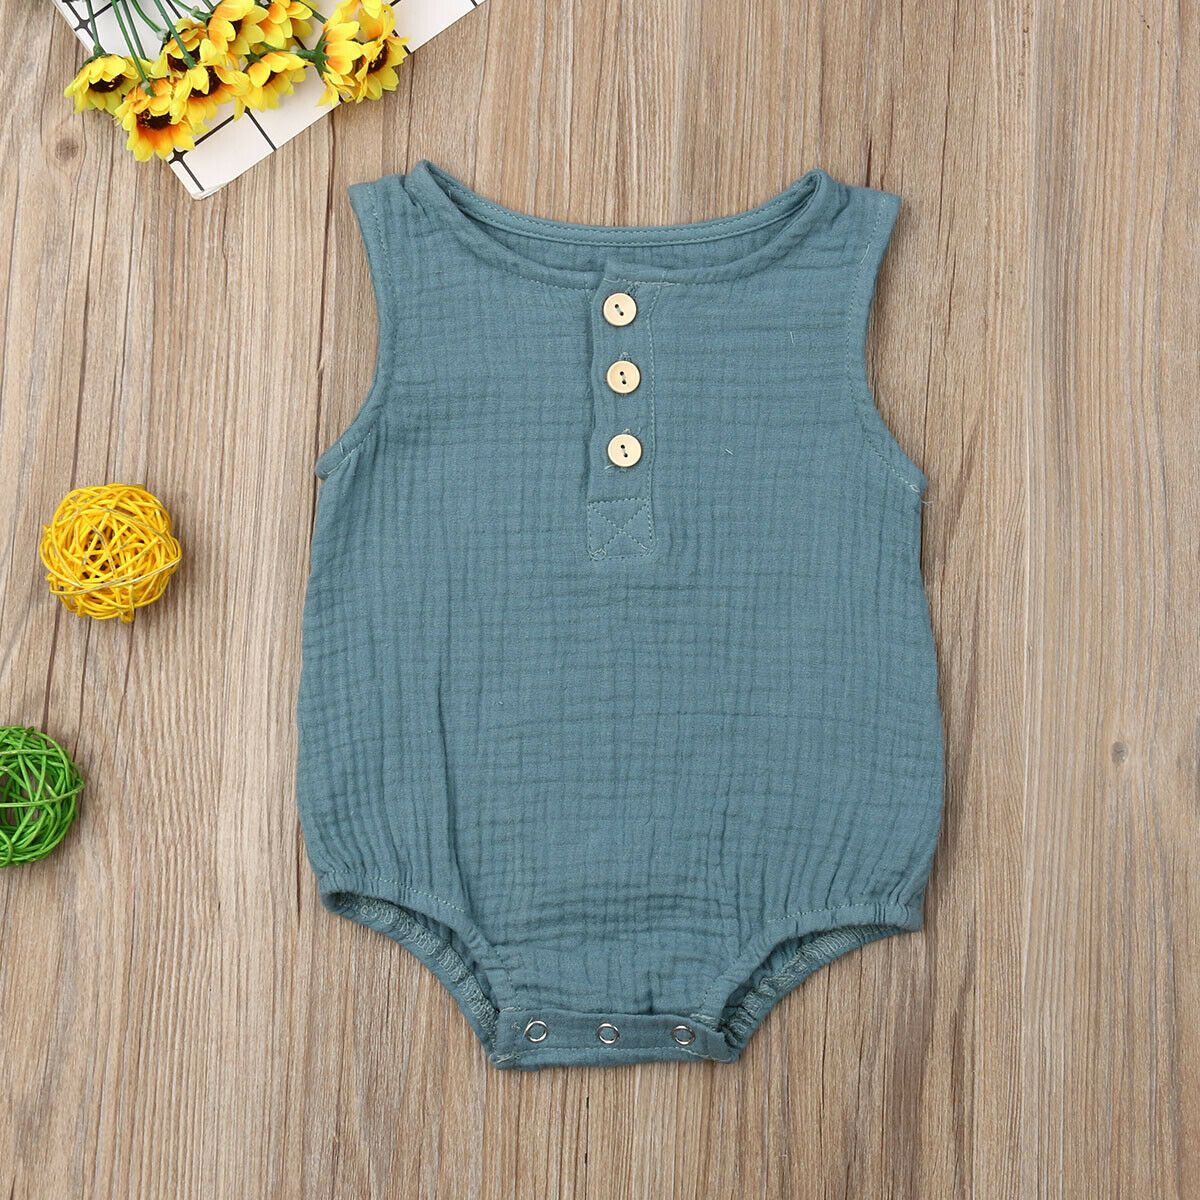 Infant 100% Cotton Bodysuit Outfit For 0-24M - asheers4u